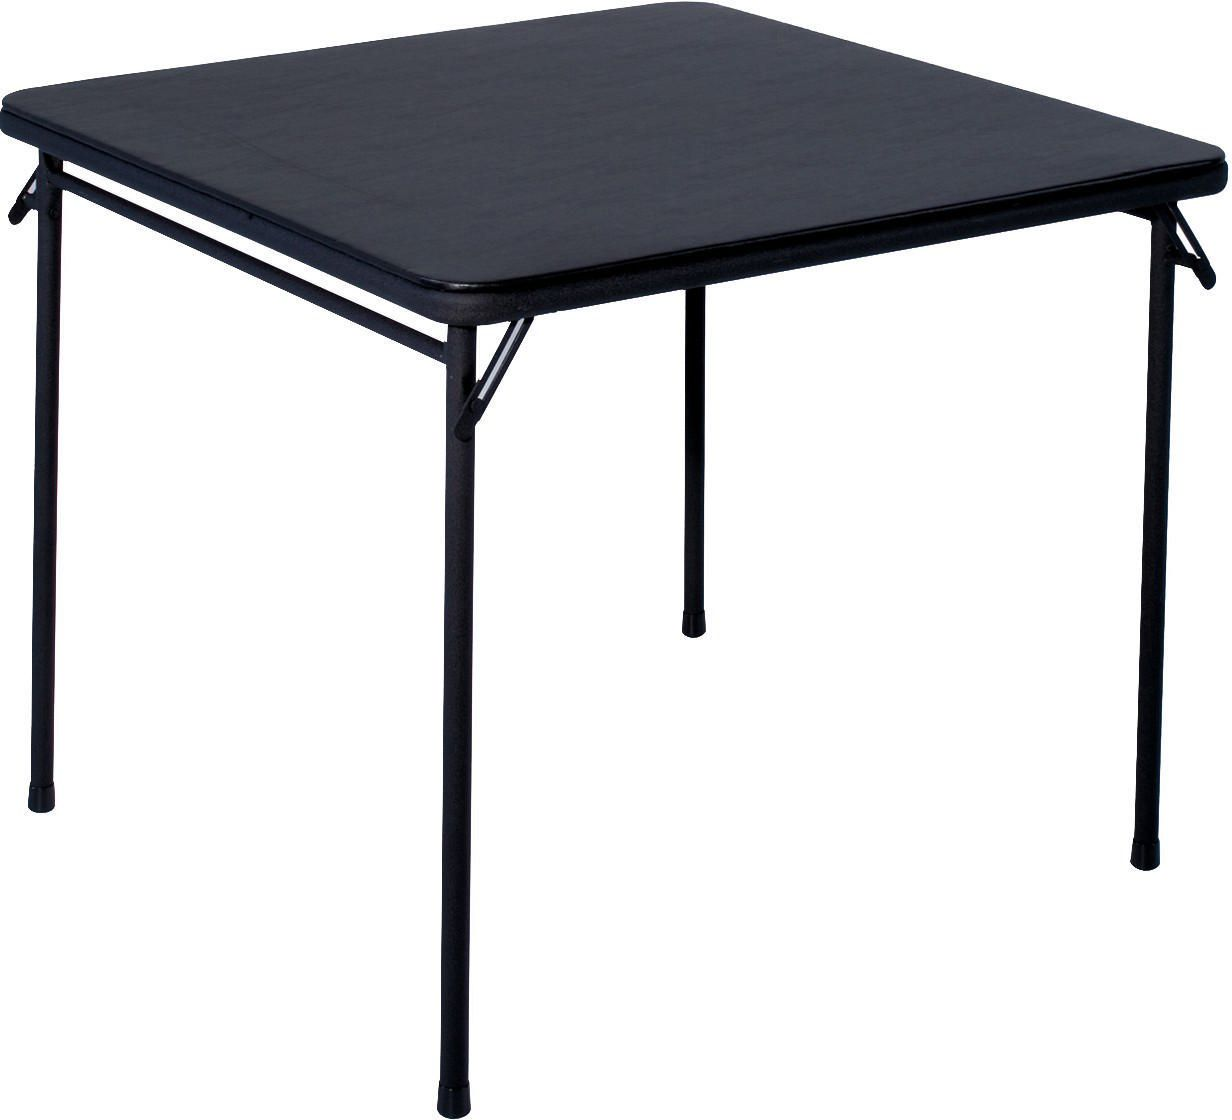 "Table Walmart: Cosco 34"" Square Folding Table"